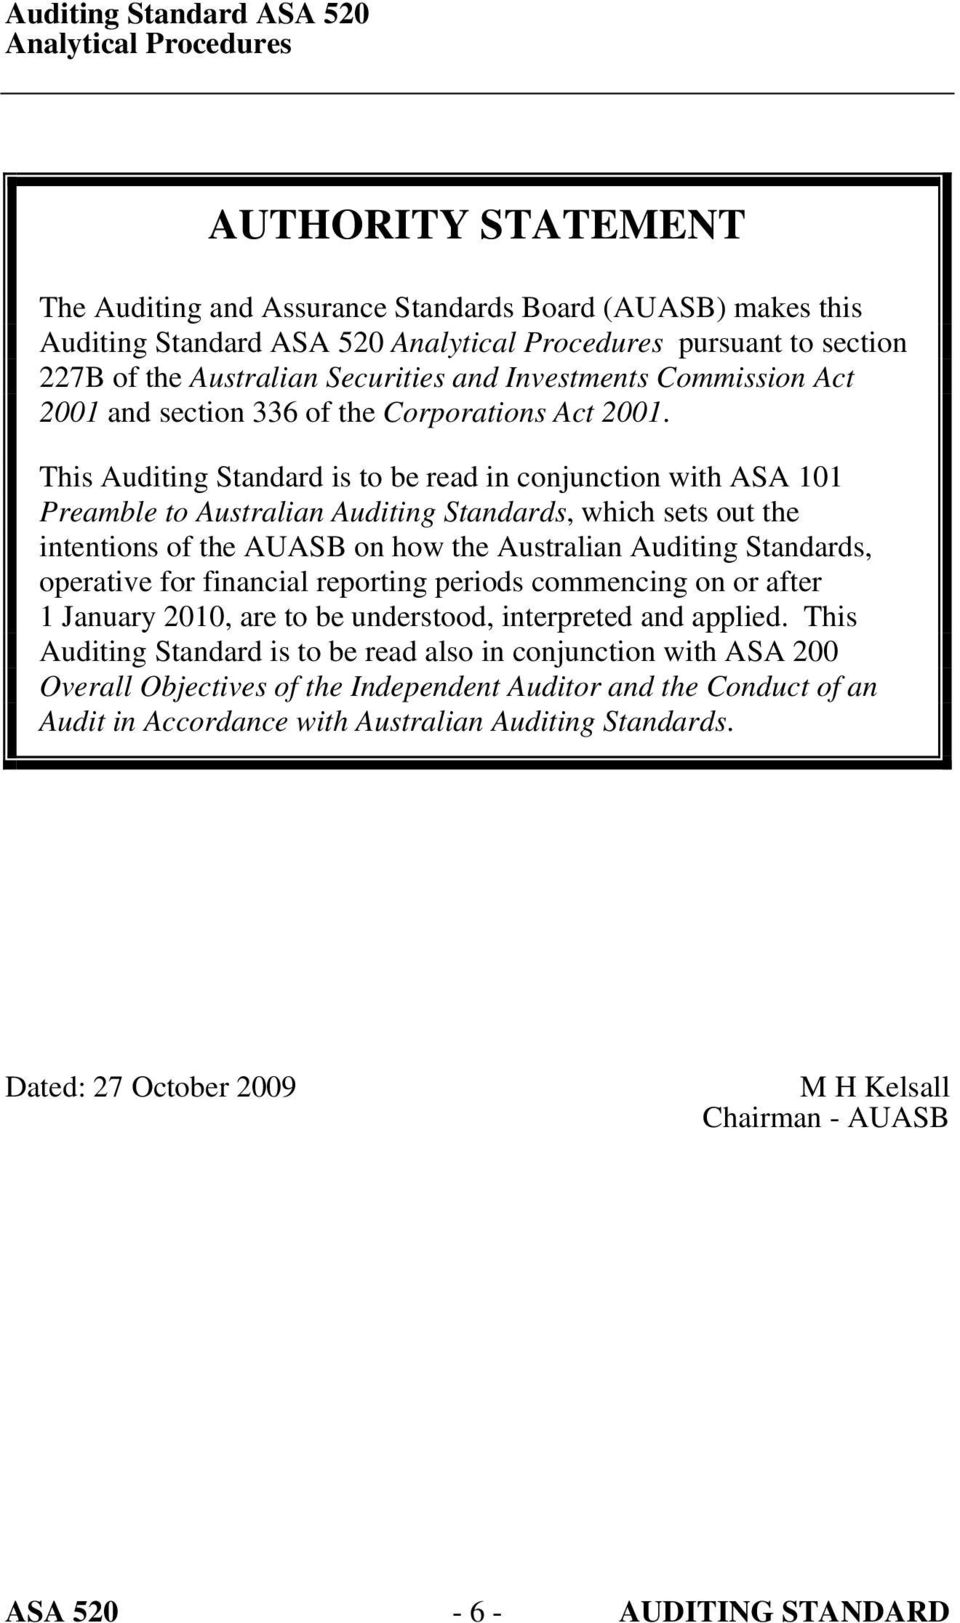 This Auditing Standard is to be read in conjunction with ASA 101 Preamble to Australian Auditing Standards, which sets out the intentions of the AUASB on how the Australian Auditing Standards,